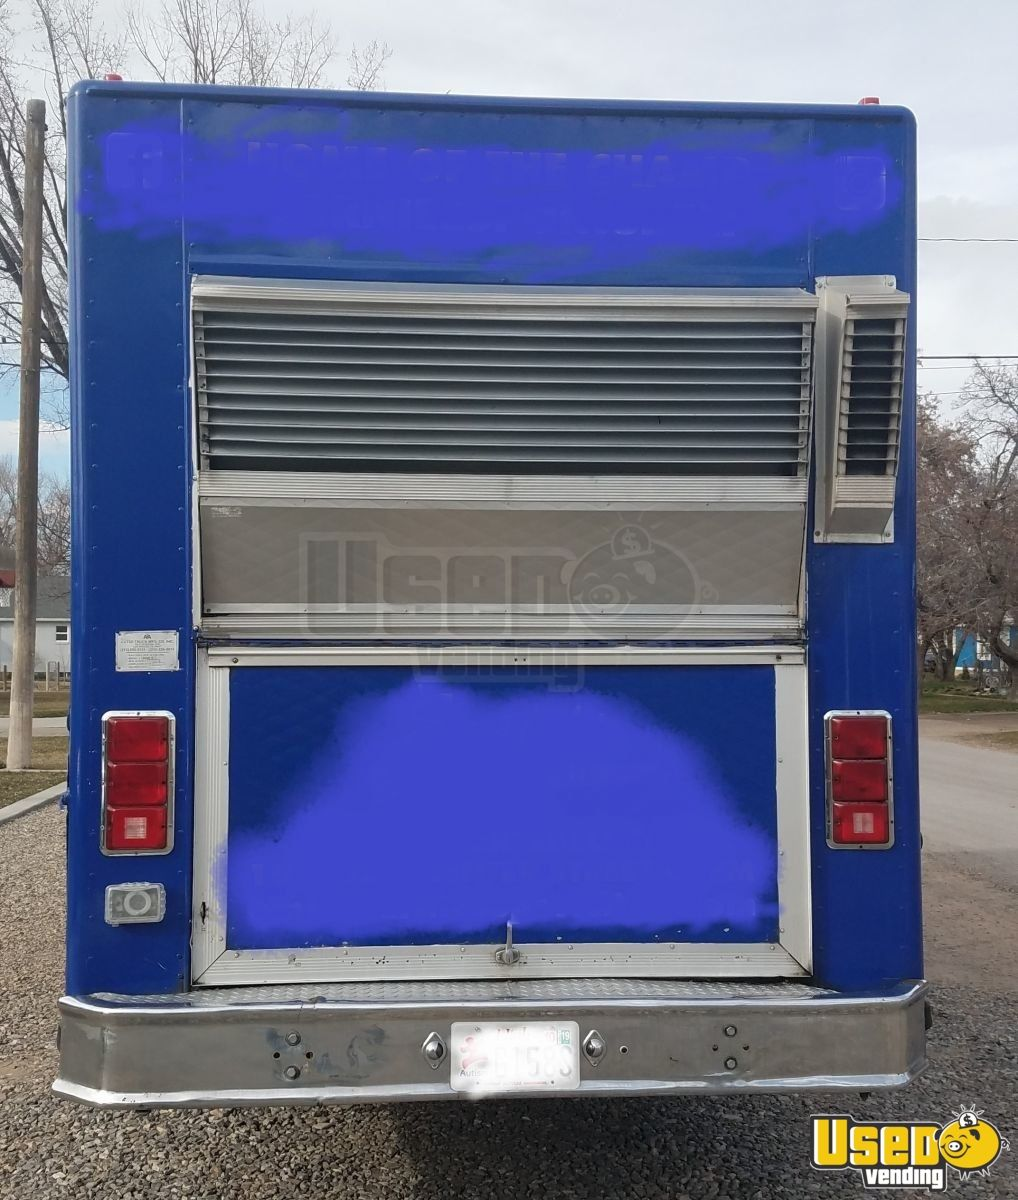 1988 Aa Cater Truck All-purpose Food Truck Stainless Steel Wall Covers Utah Gas Engine for Sale - 4